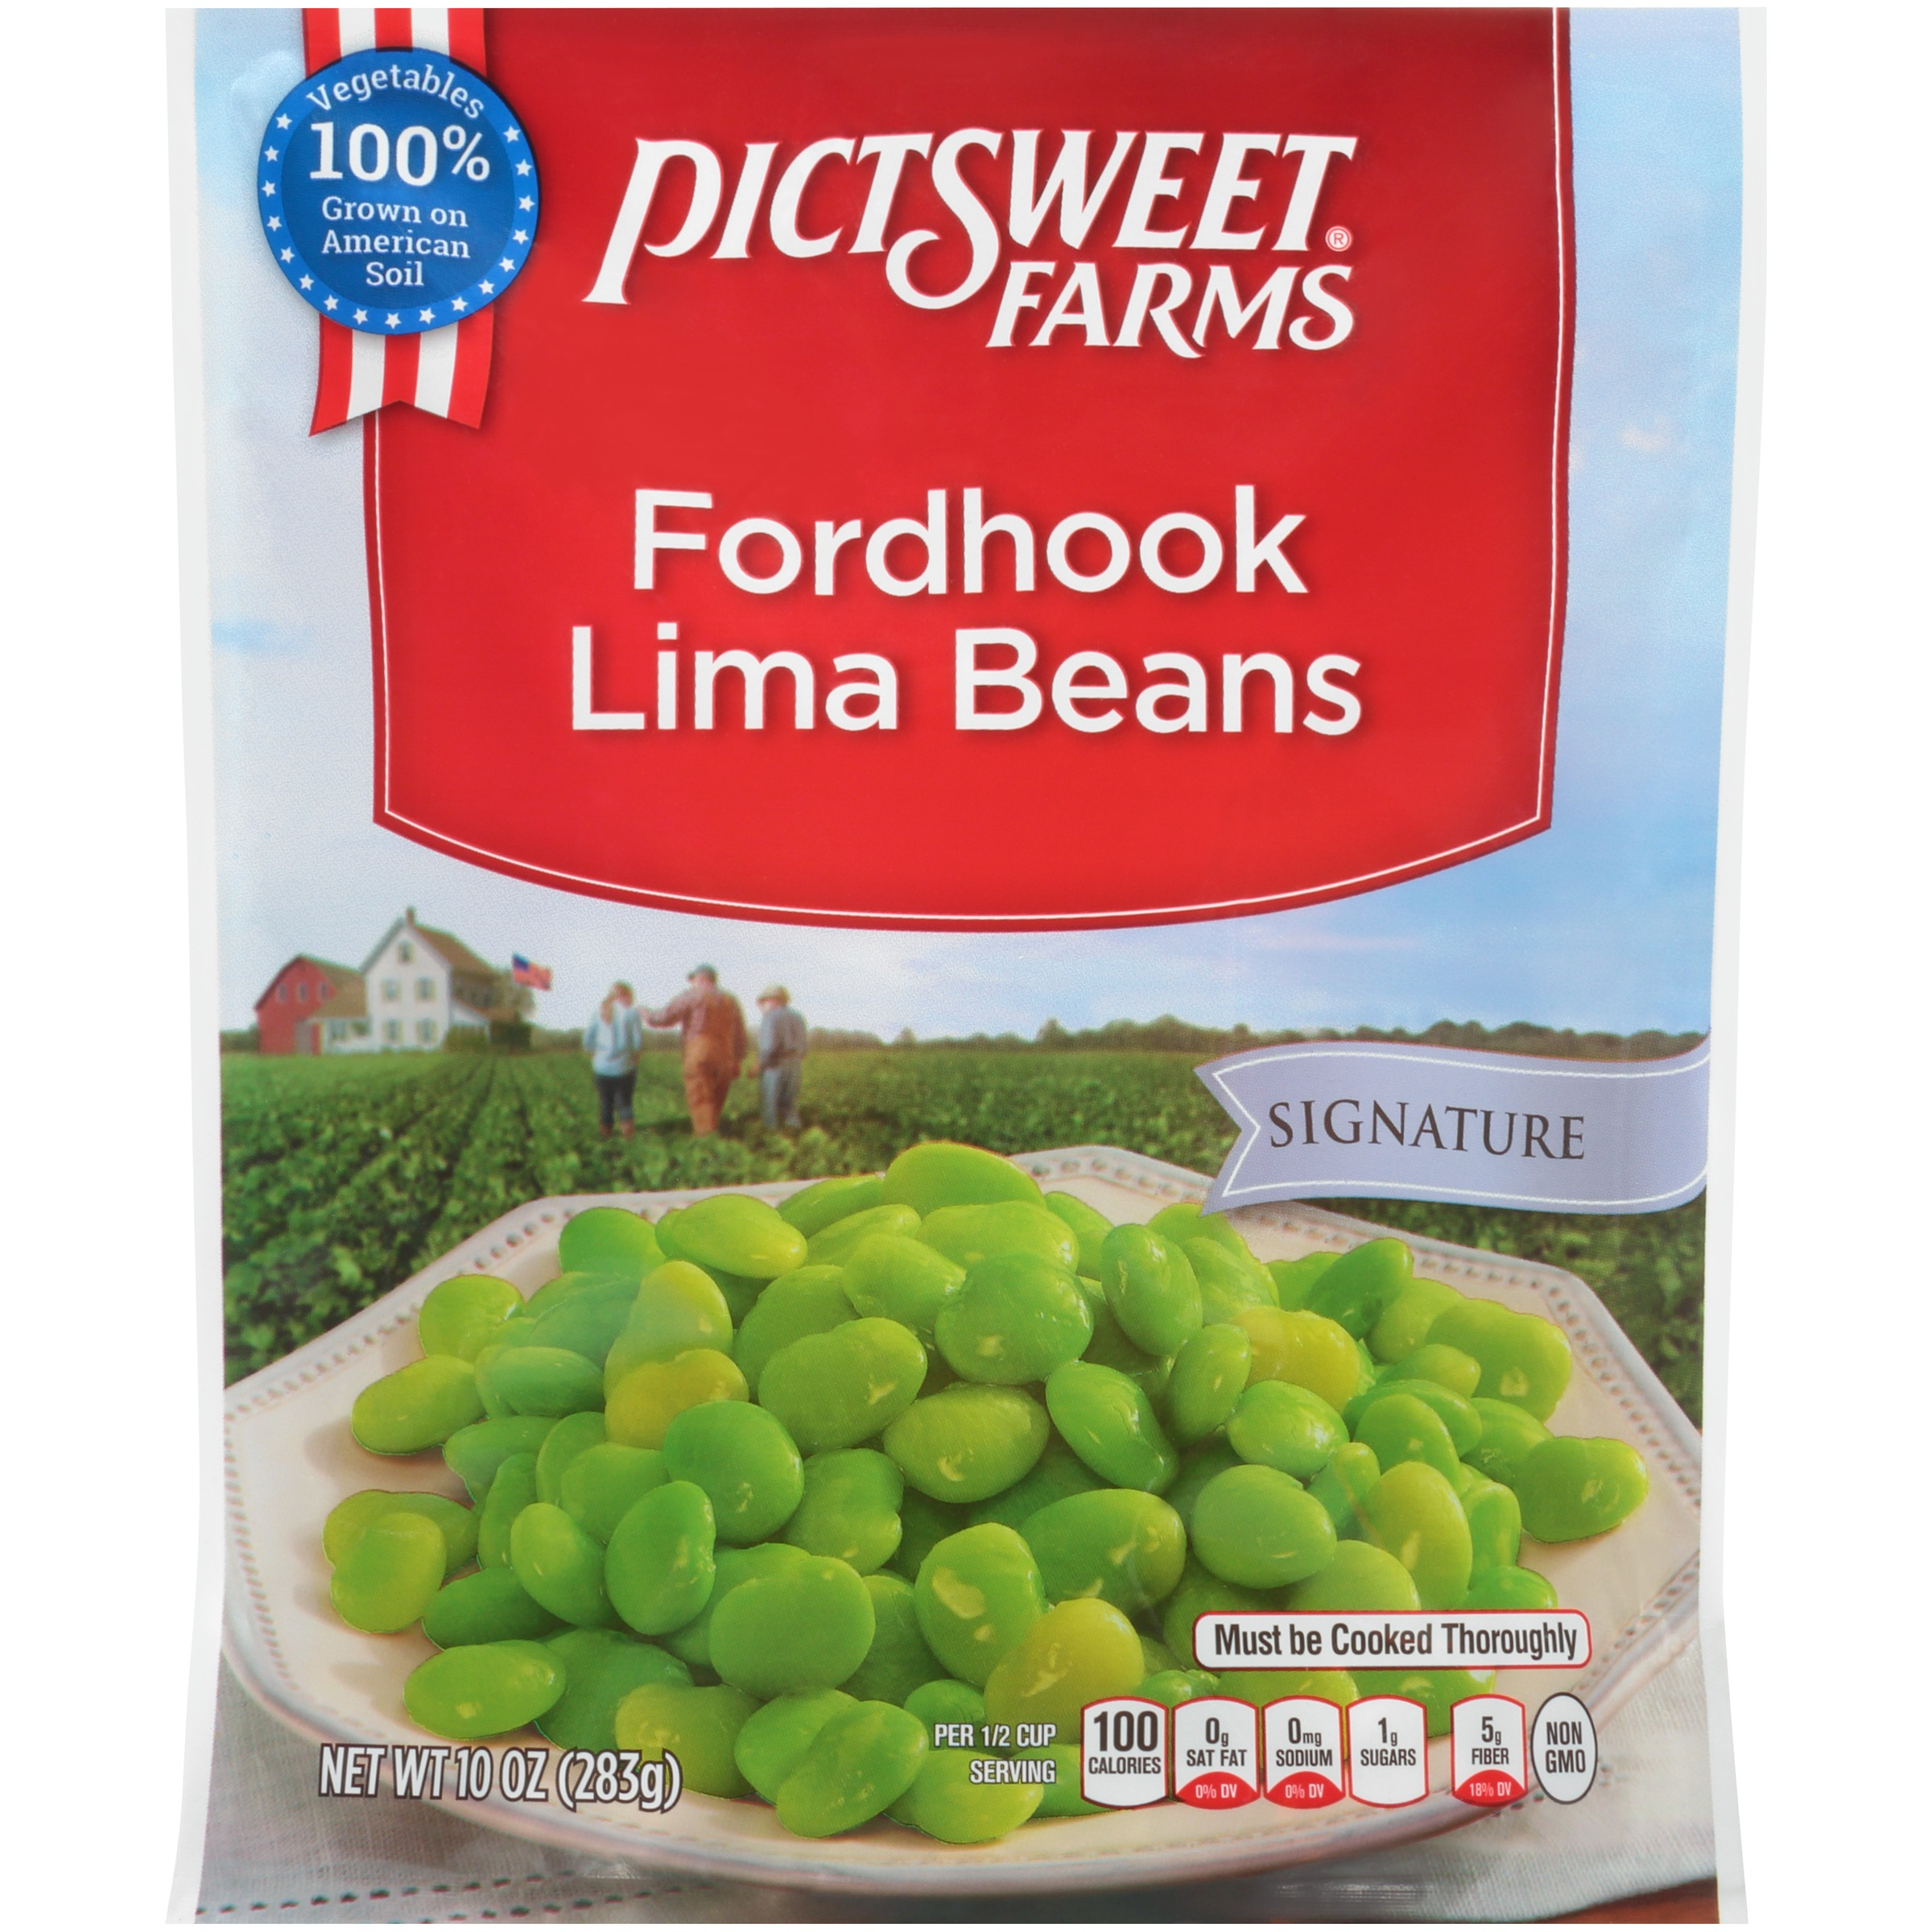 Pictsweet Farms® Signature Fordhook Lima Beans 10 oz. Stand-Up Bag